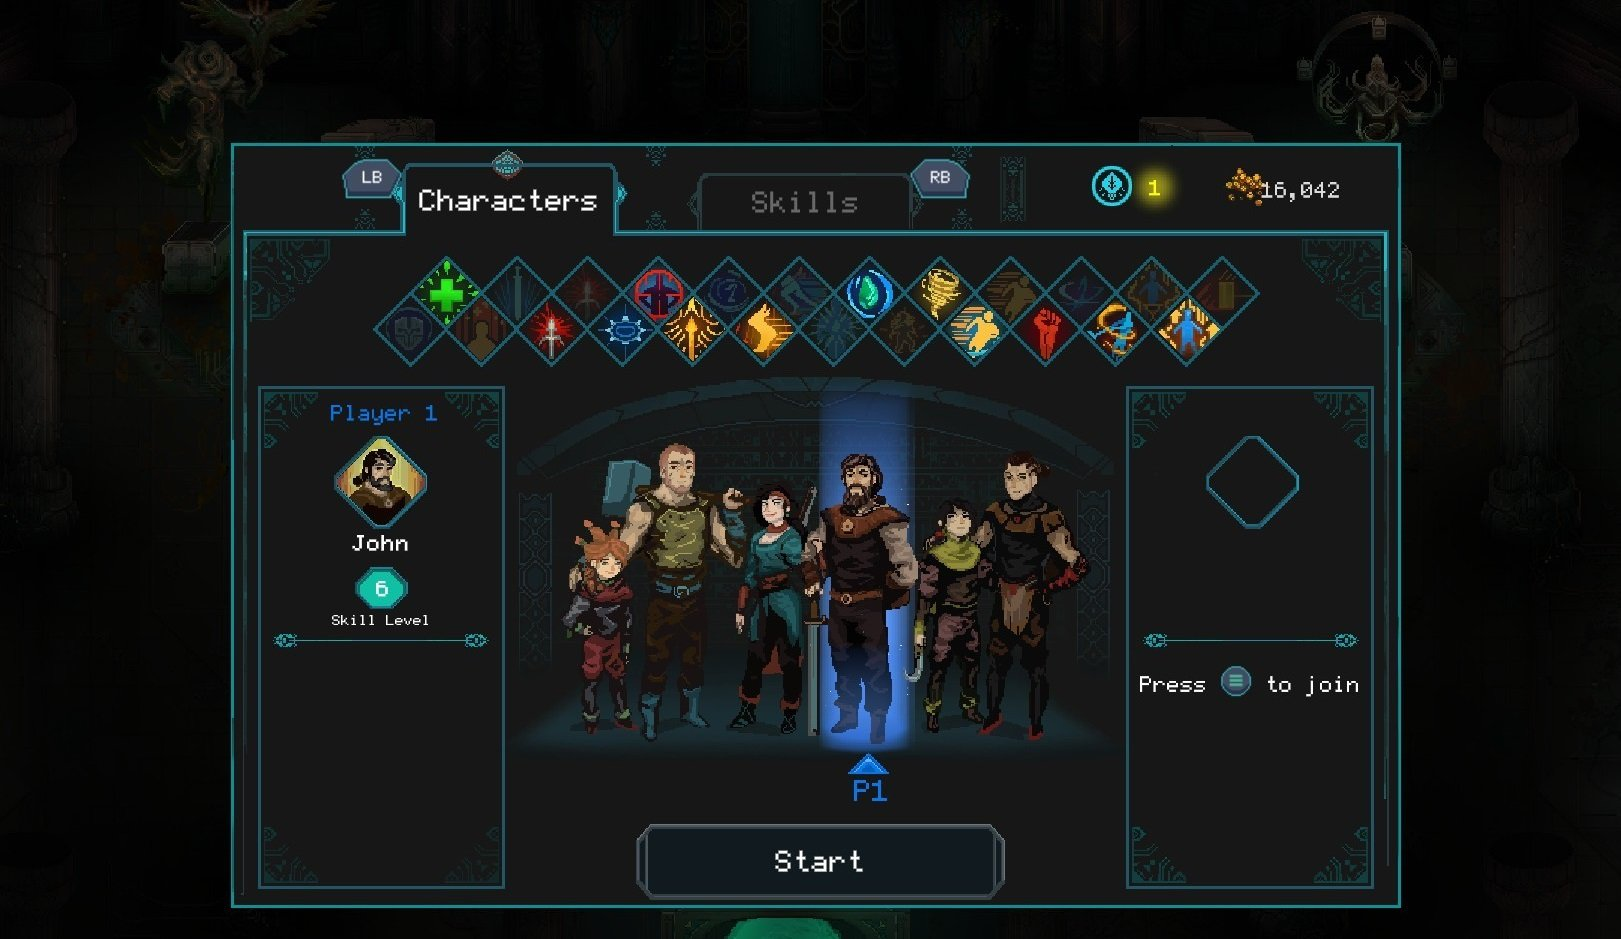 Dead Mage was kind enough to answer interview questions regarding the creation of Children of Morta and what players can expect from the game in the future.